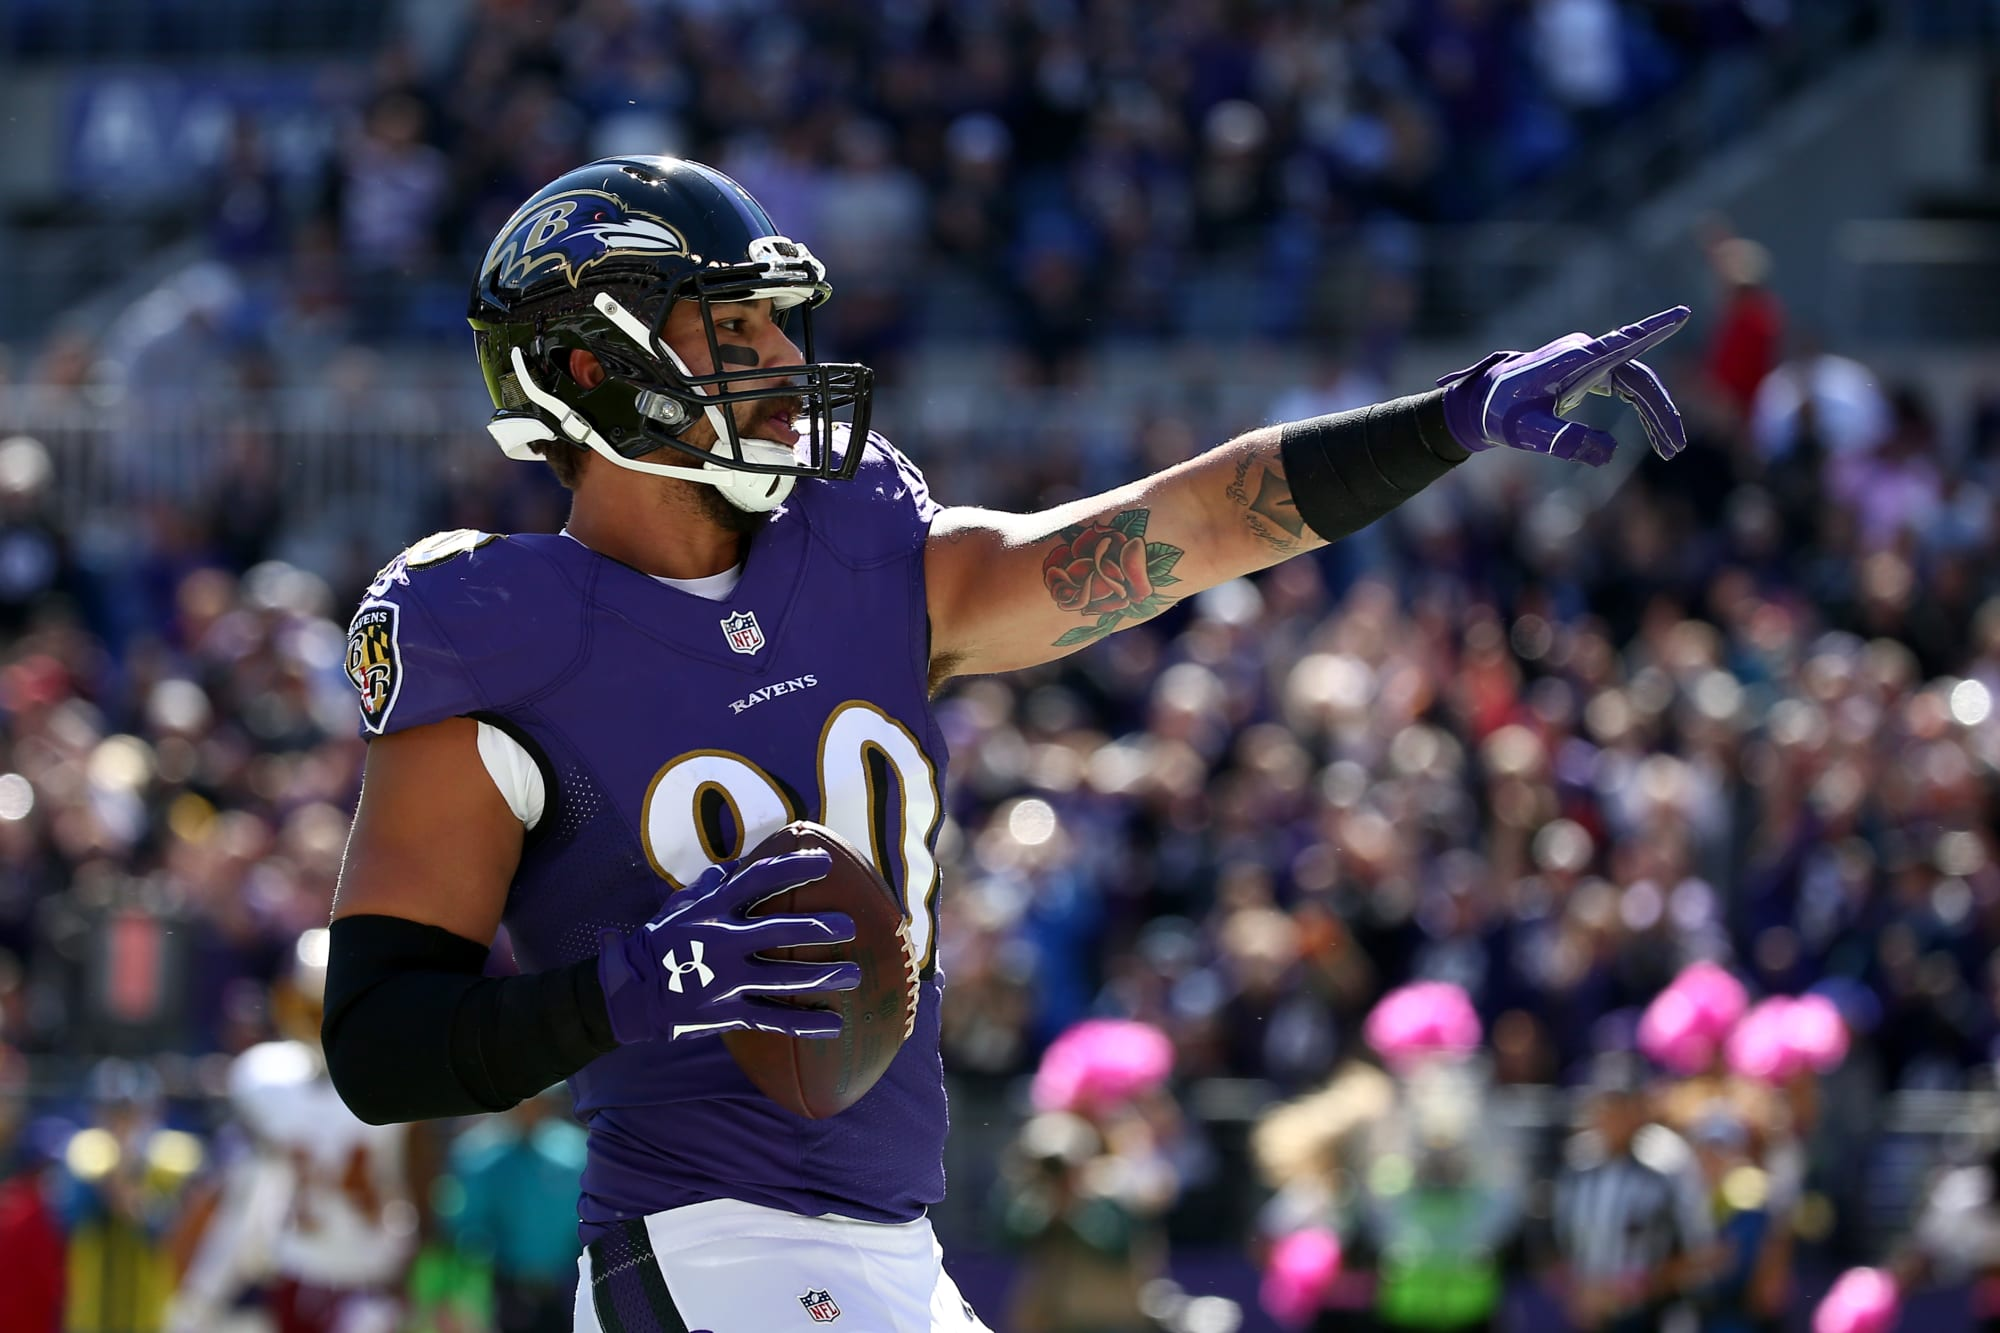 Report: Crockett Gillmore is transitioning to the offensive line